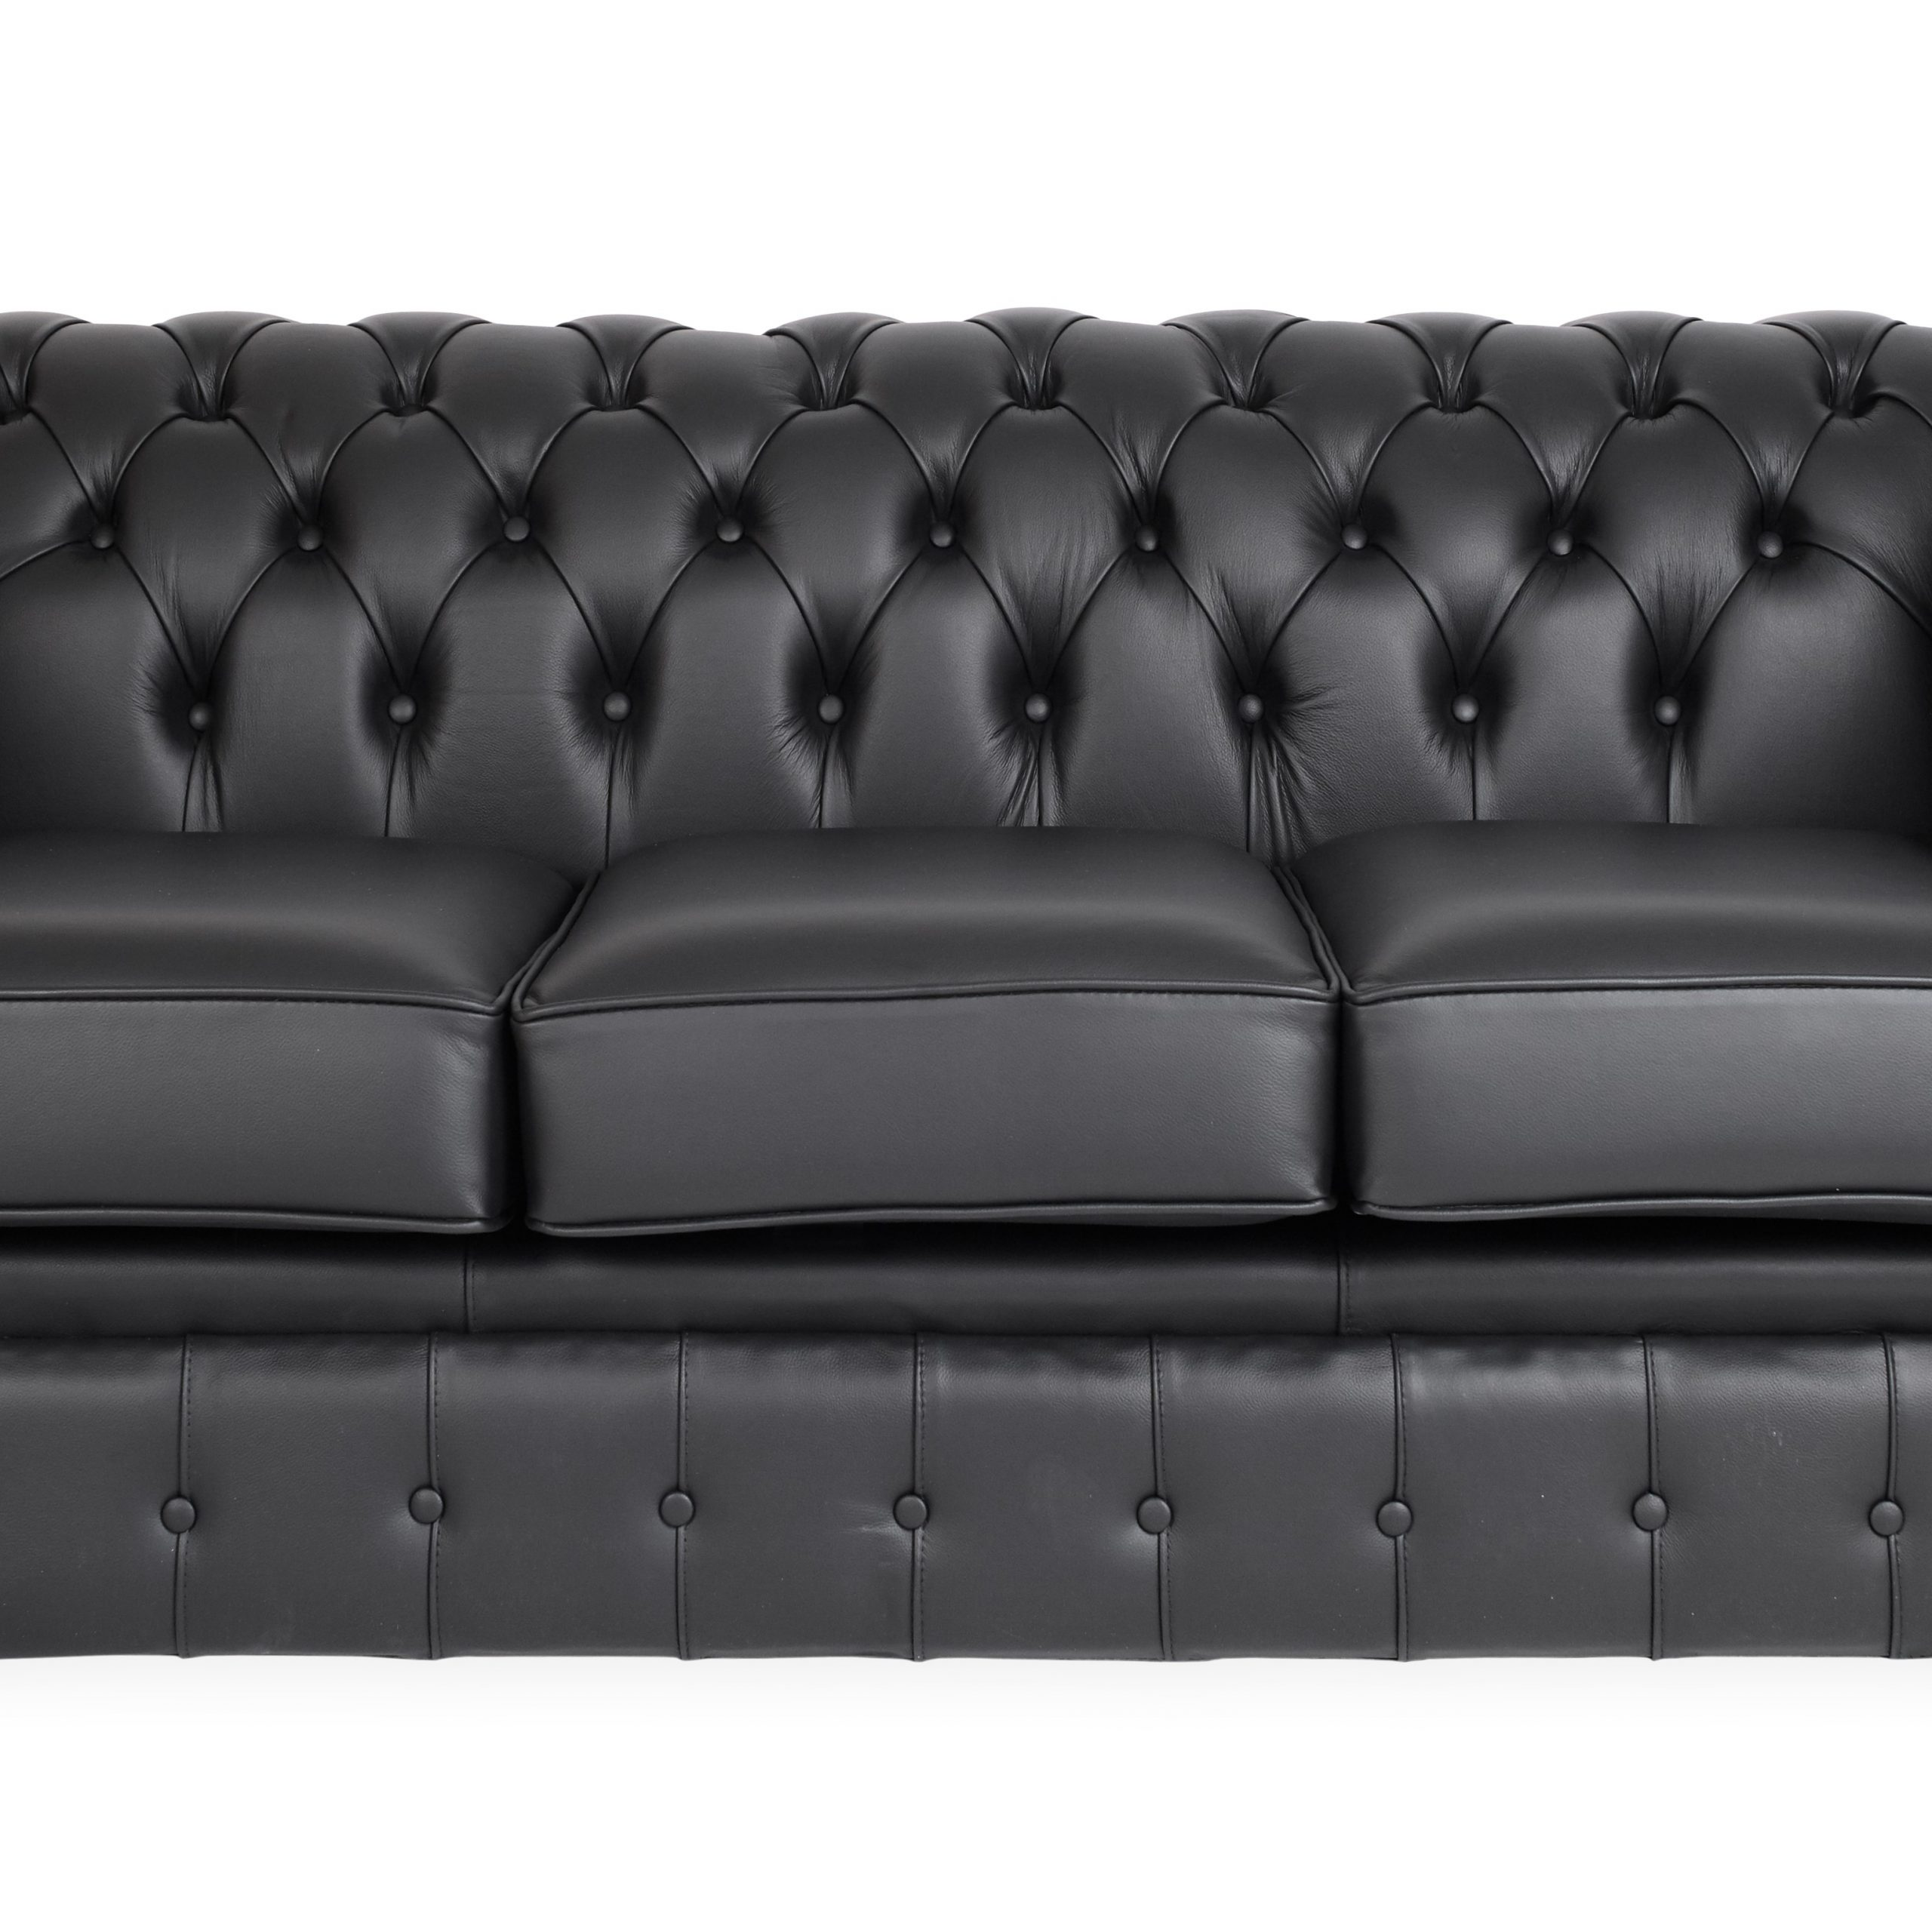 Black Chesterfield Three Seater Sofa | Lolliprops Event Intended For Chesterfield Sofas (View 2 of 15)